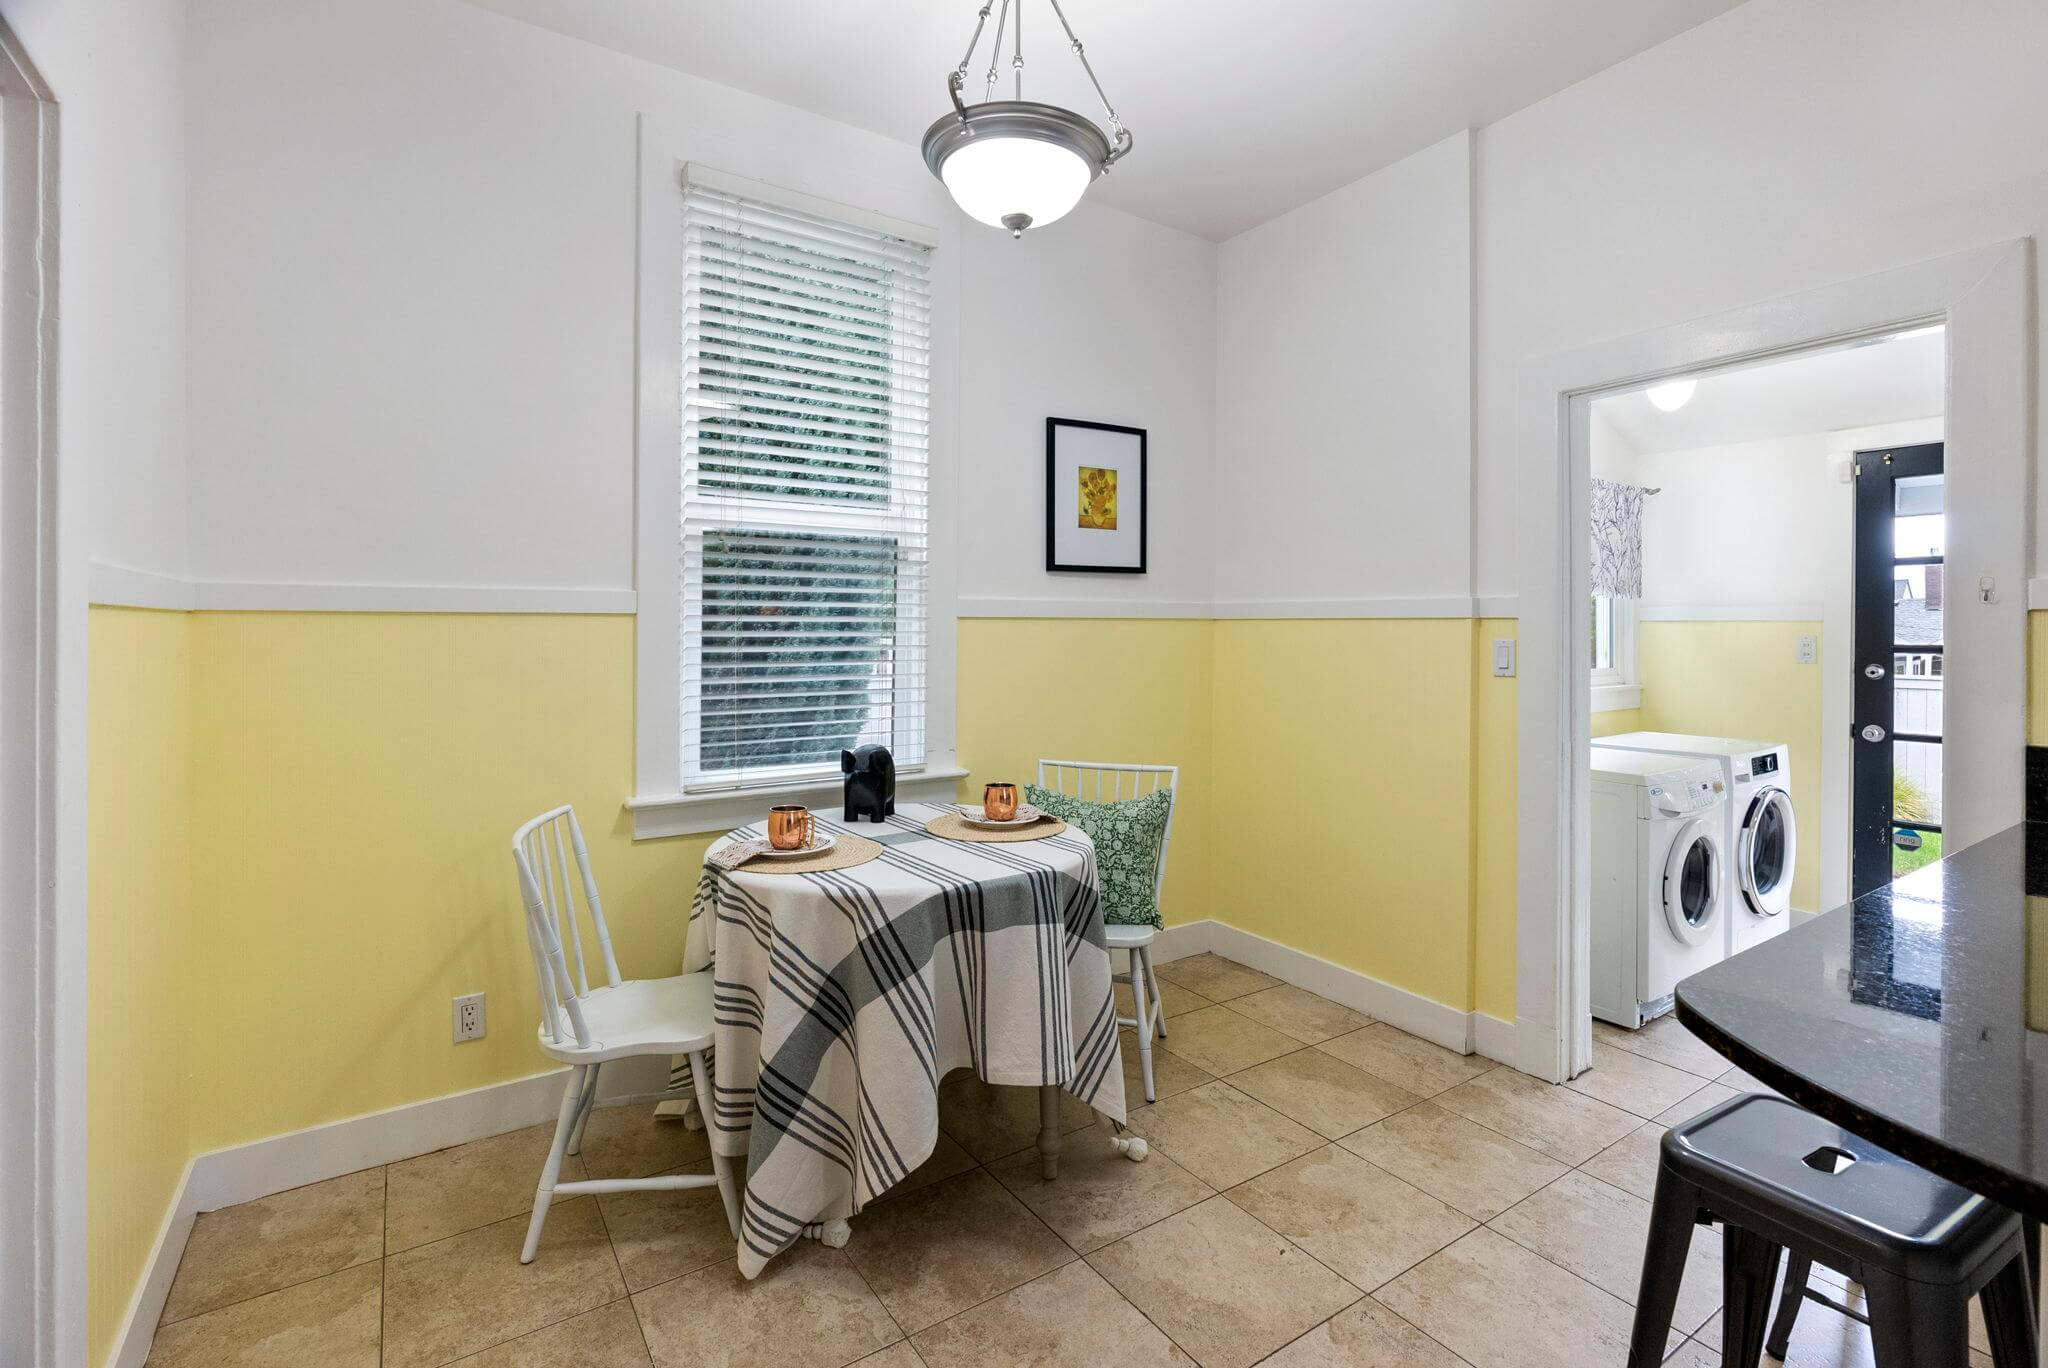 Ample space for casual dining